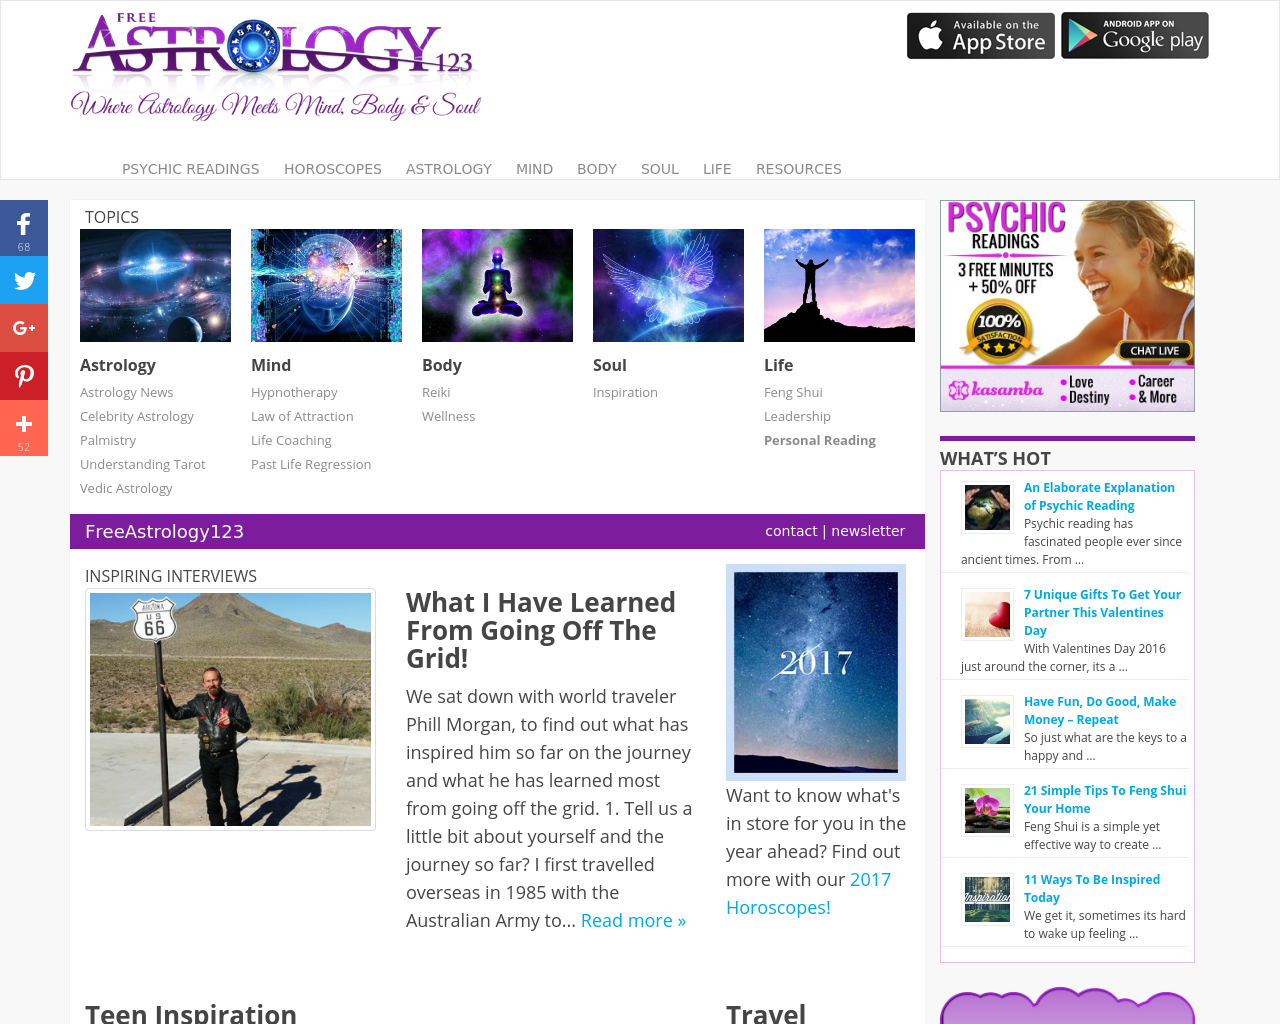 FREE-ASTROLOGY-123-Advertising-Reviews-Pricing